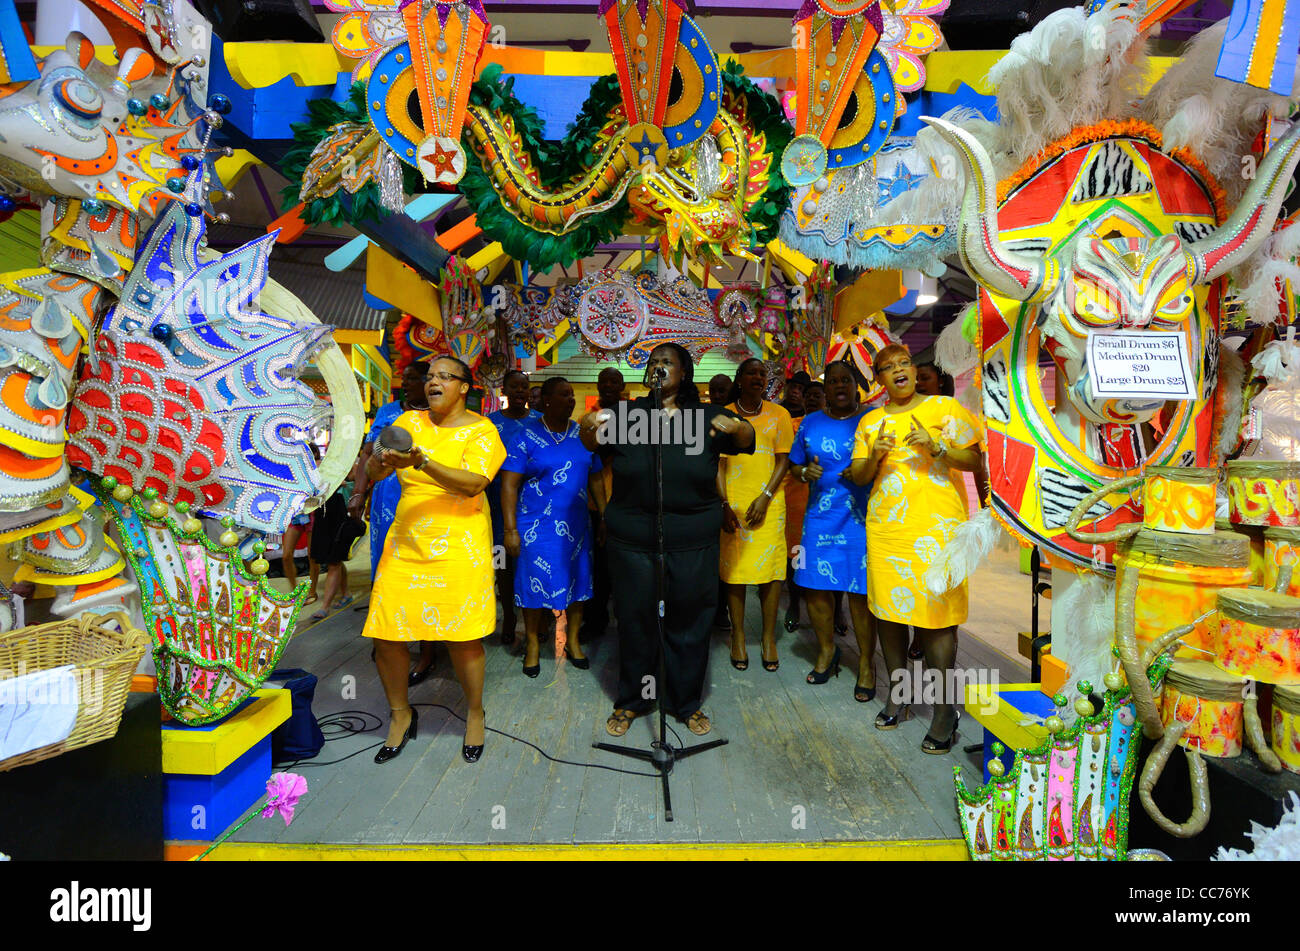 Nassau, Bahamas - January 1, 2012: Gospel singers welcome visitors to the port at Nassau, Bahamas in traditional - Stock Image